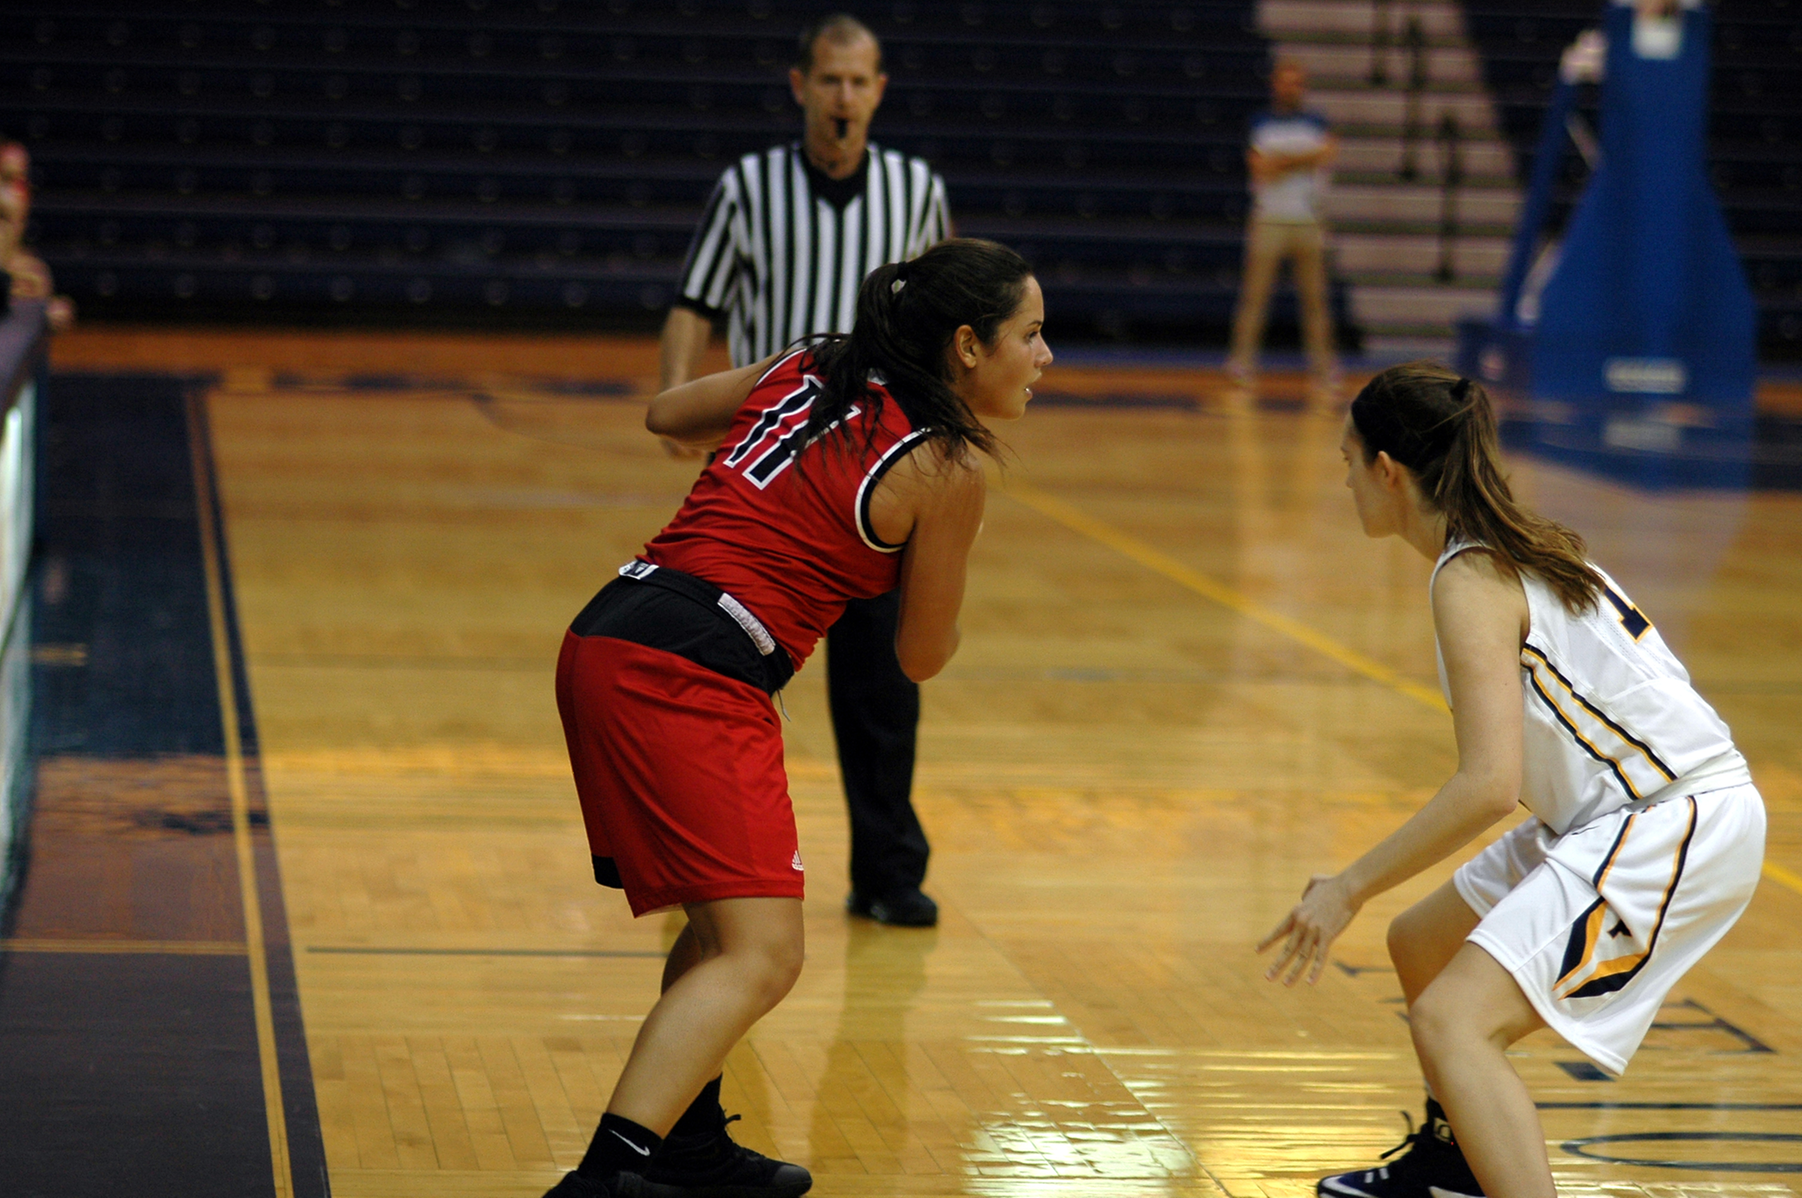 WOMEN'S BASKETBALL FALLS TO MANHATTAN COLLEGE IN EXHIBITION CONTEST